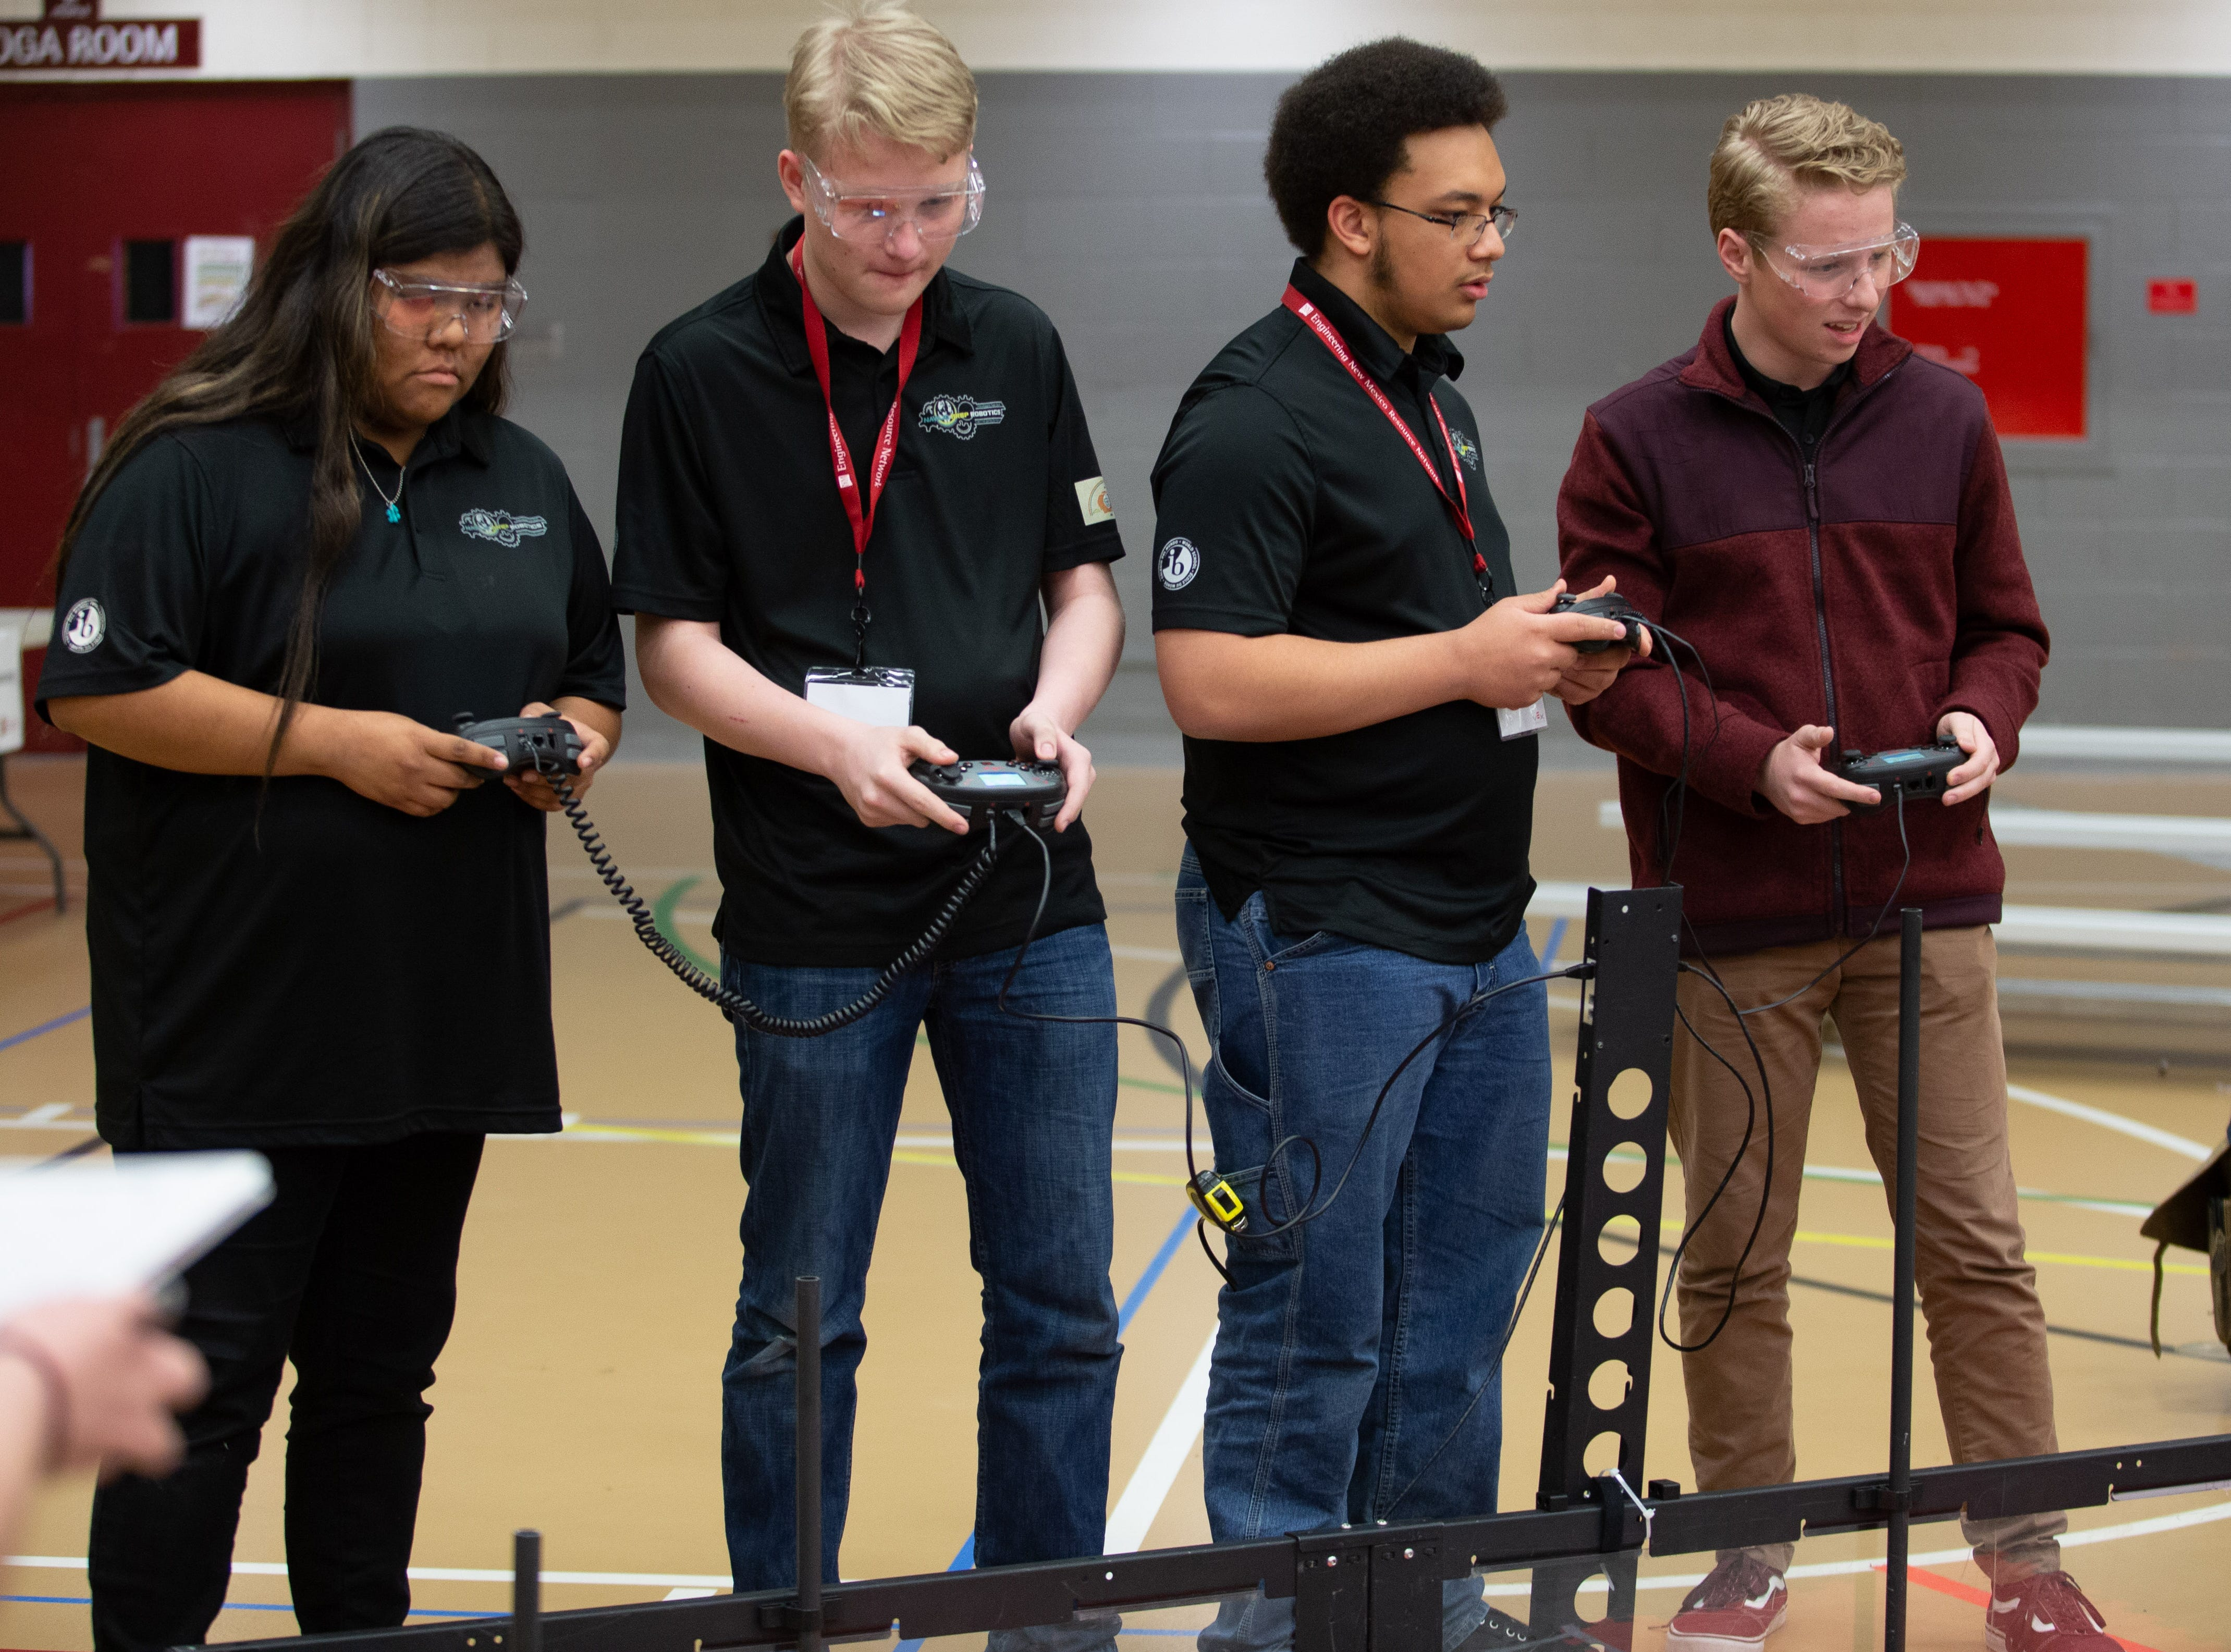 The team from Navajo Preporatory School ub Farmington consists of (from left) Taylor Yazzie, 18,  Xander Owen Jones, 18, Nathan Henry, 15, and Parker Jones, 17.  The VEX Robotics competition for elementary, middle and high school students held on the NMSU campus on February 16, 2019.